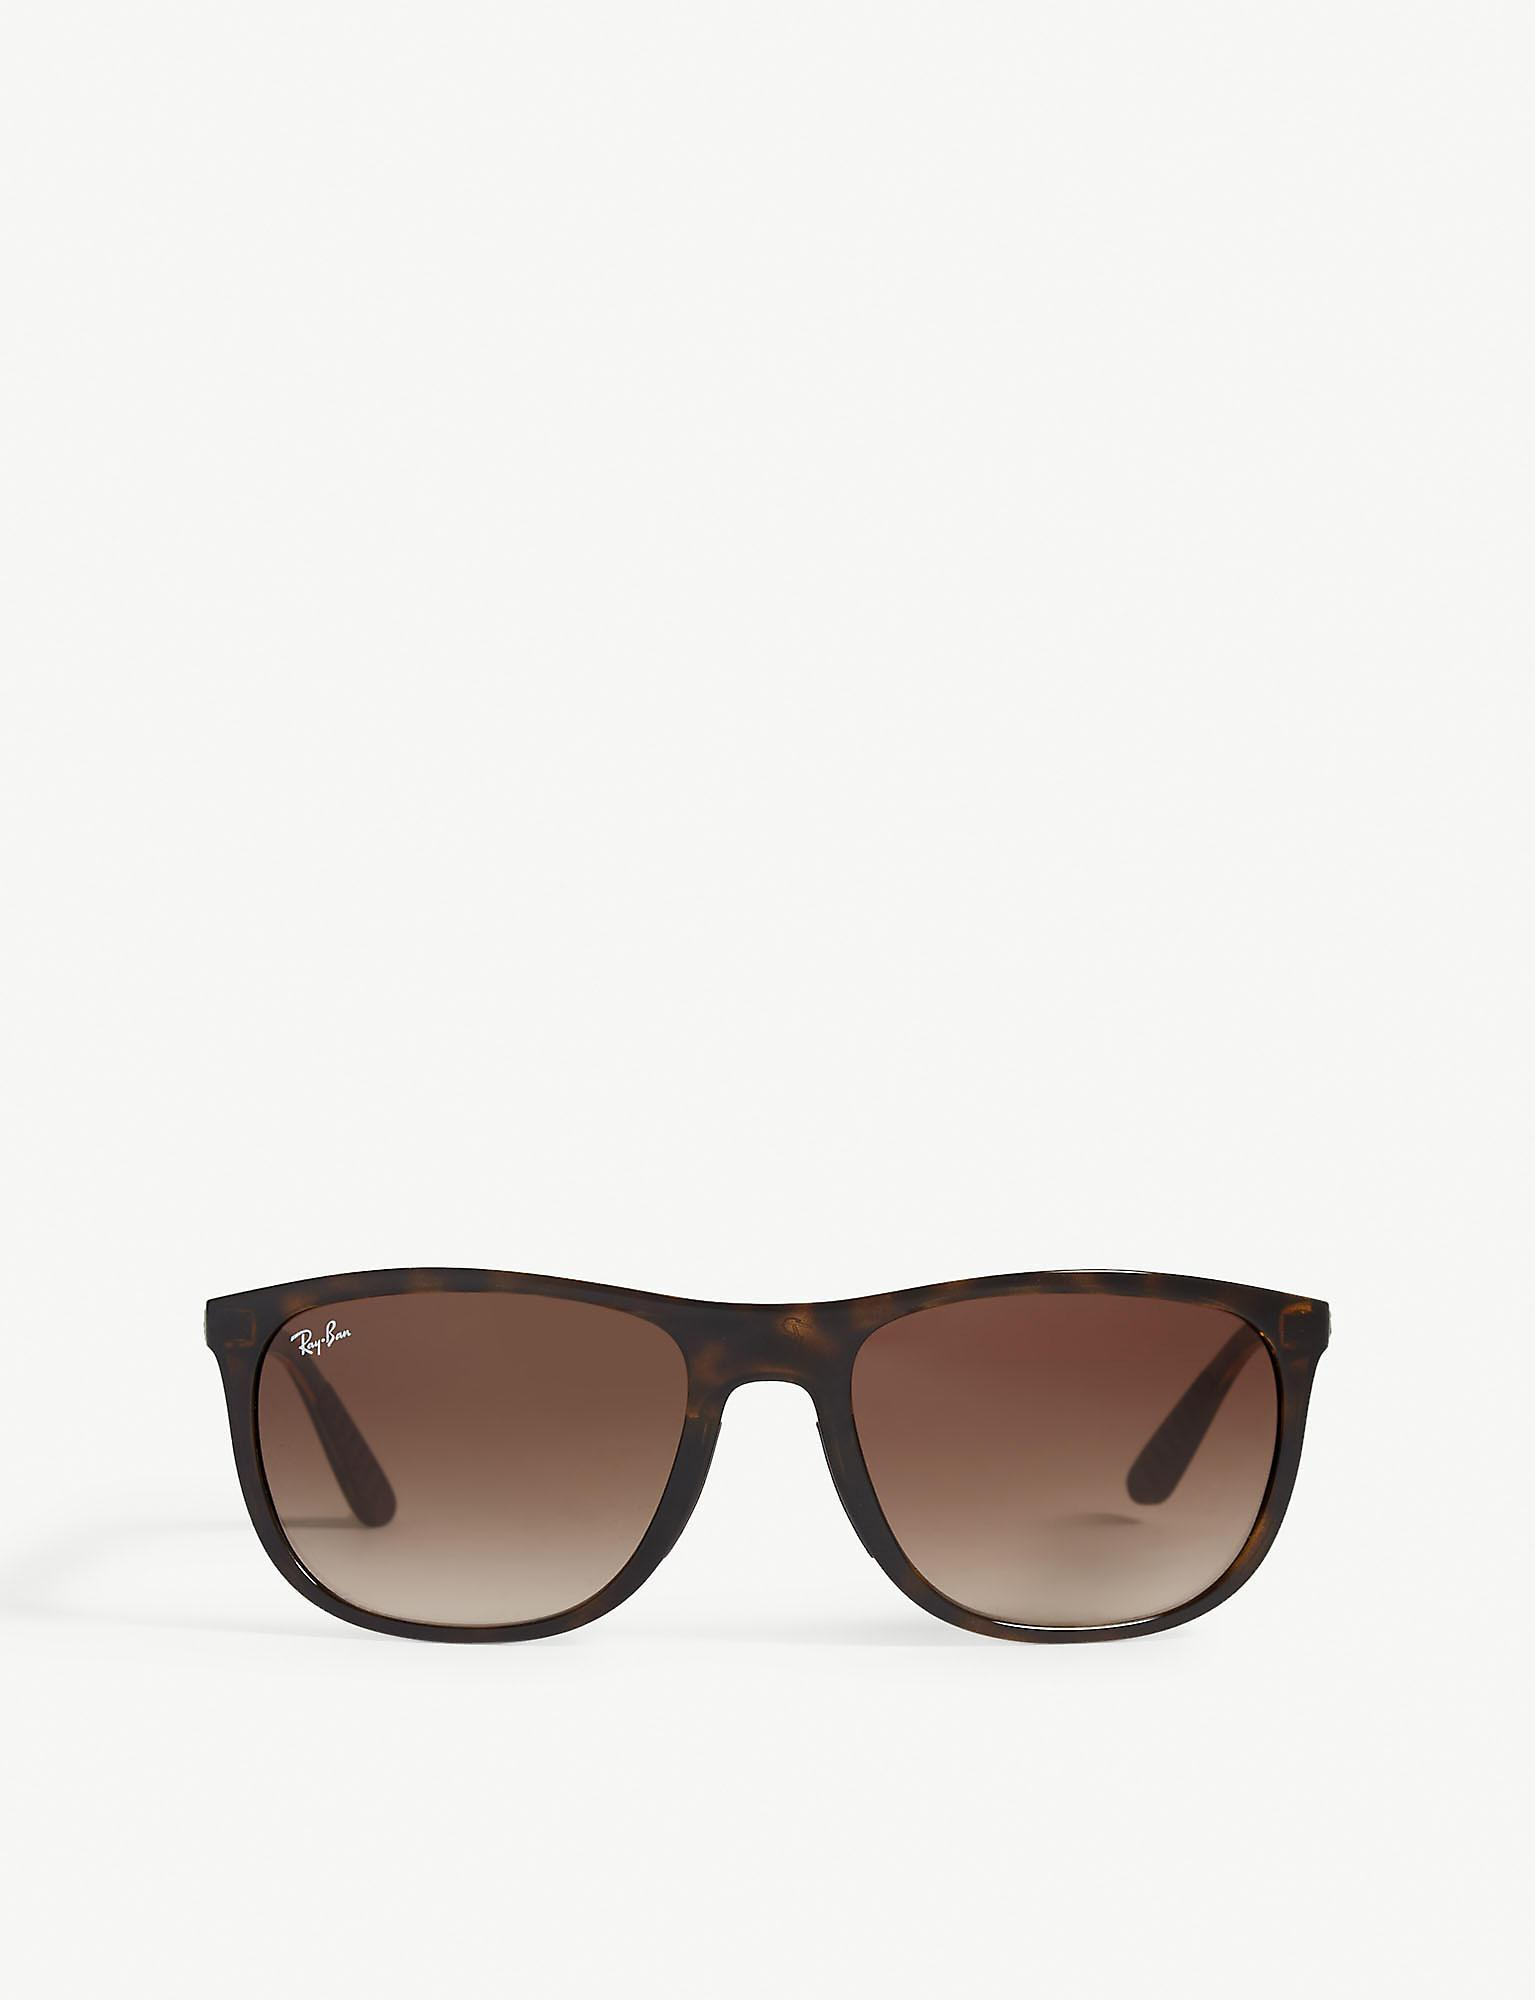 fb746b3520f09 Ray-Ban Rb4291 Square-frame Sunglasses in Brown for Men - Lyst